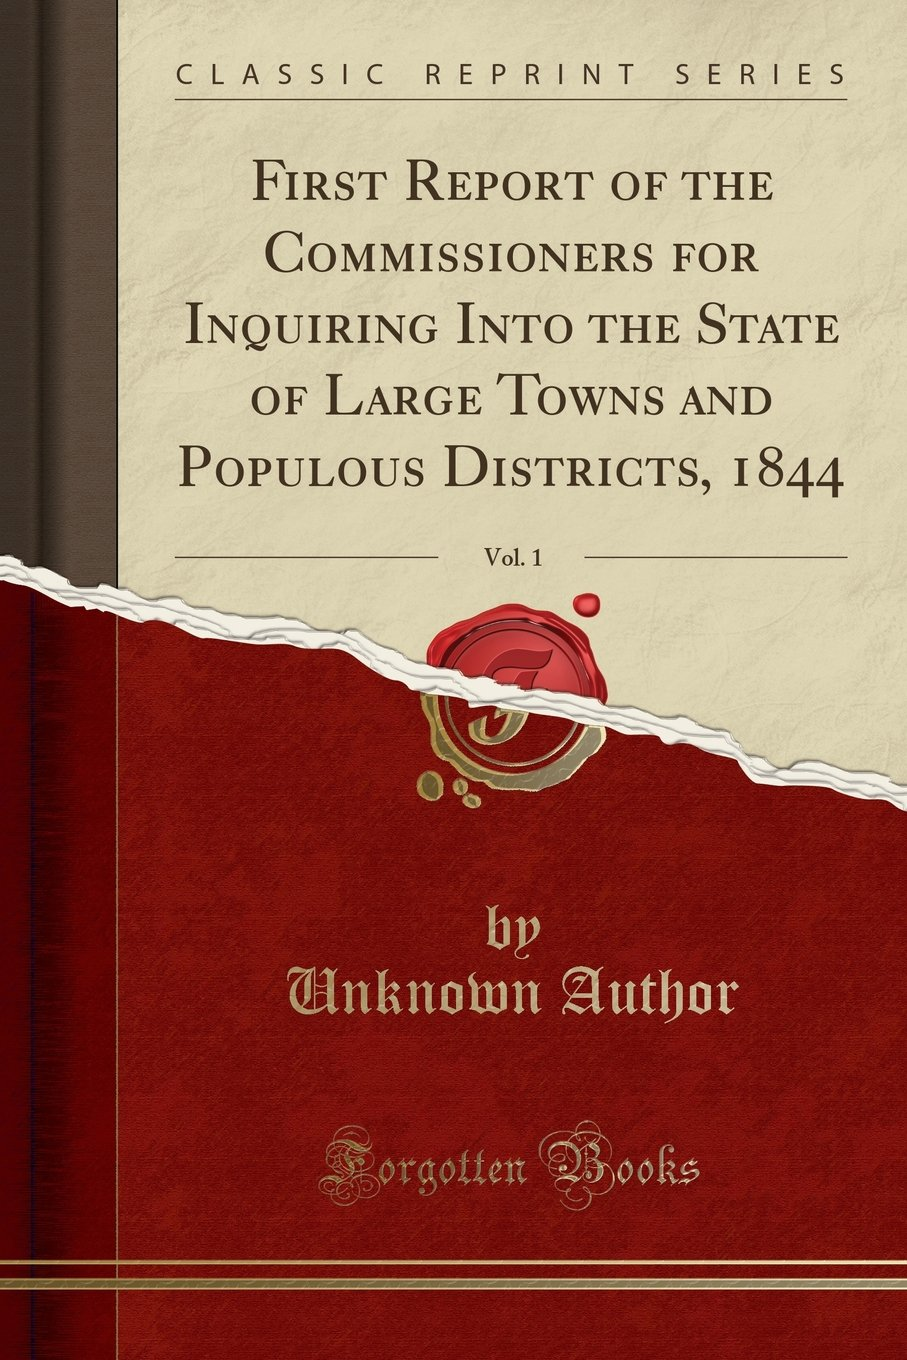 First Report of the Commissioners for Inquiring Into the State of Large Towns and Populous Districts, 1844, Vol. 1 (Classic Reprint) pdf epub